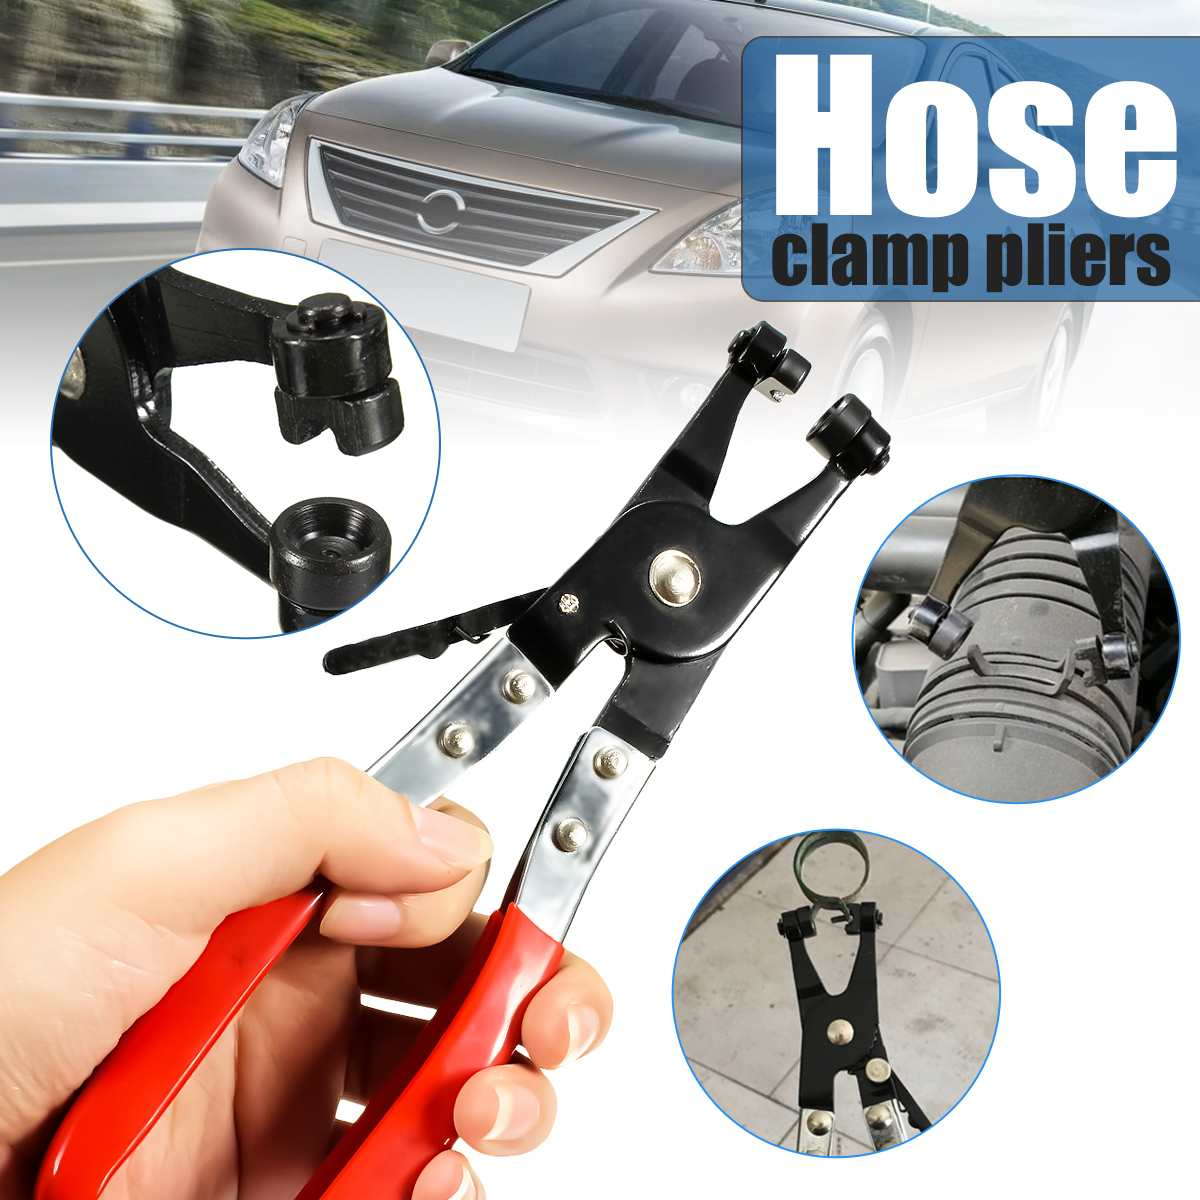 Automobile Removal Tool Flat Ring Type Hose Clamp Pliers Mechanics Engineer Thicker Double Dipped Handles